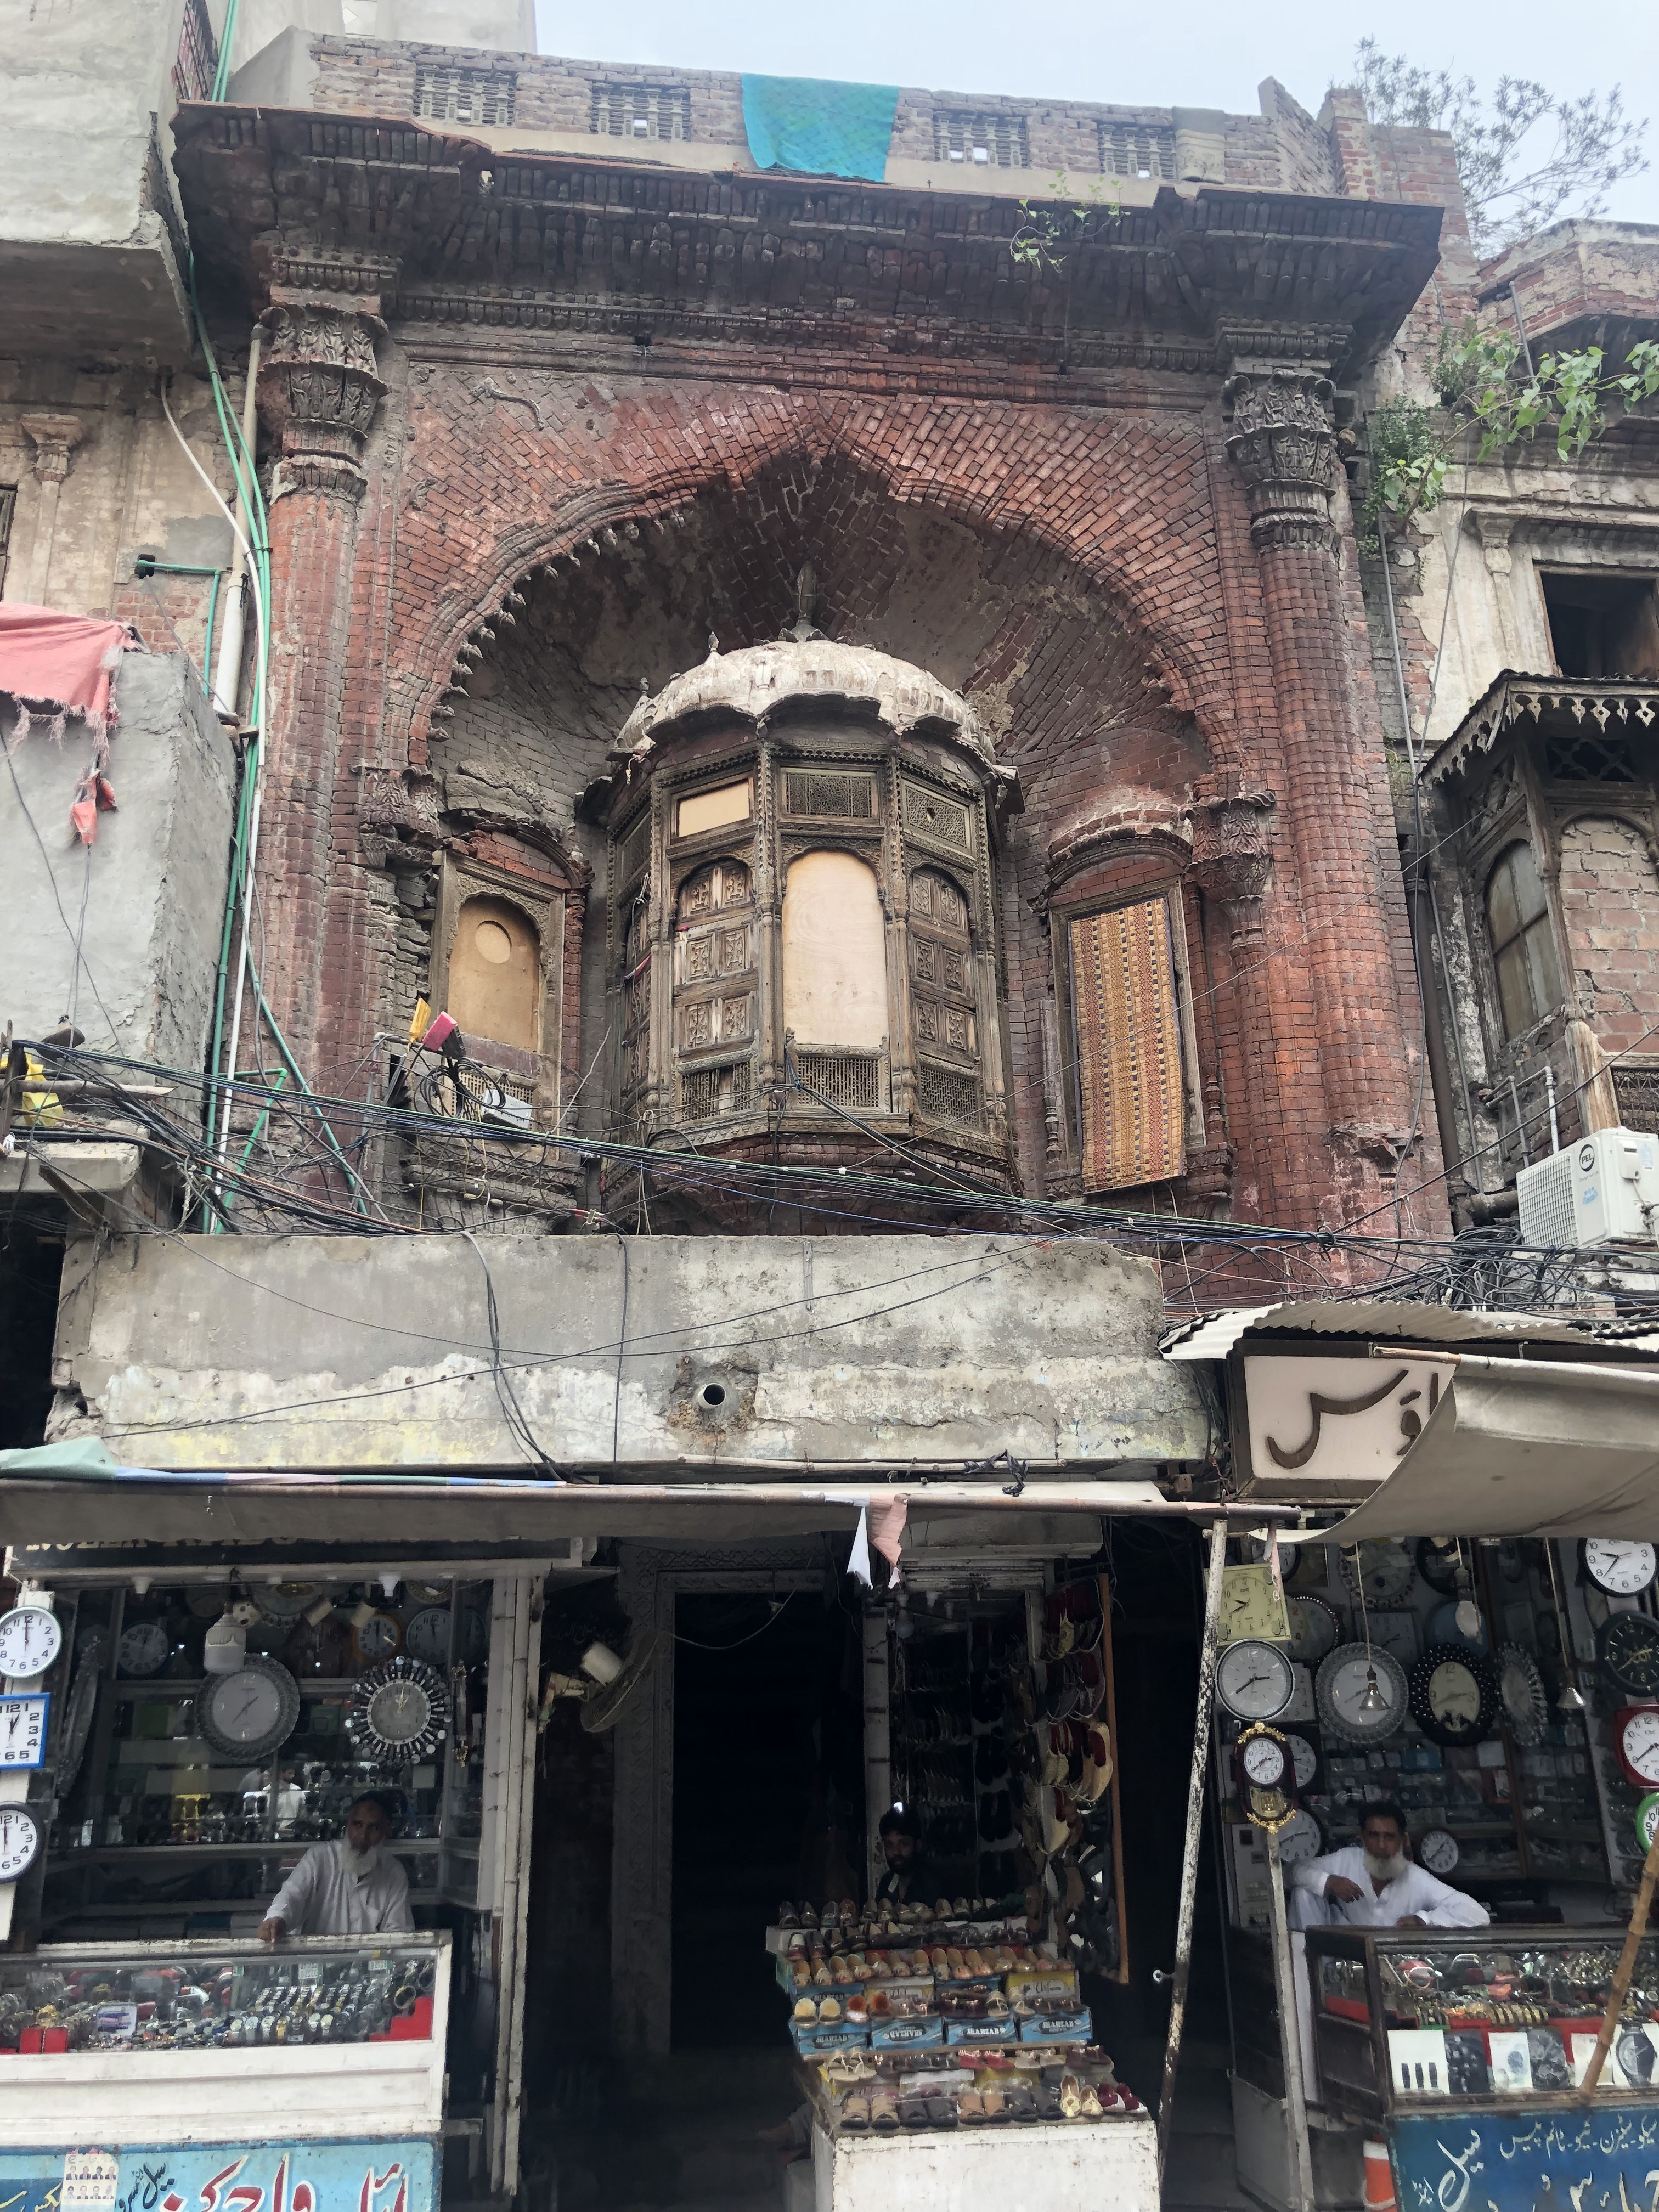 Wooden jharokha with elaborate carvings above the bazaar